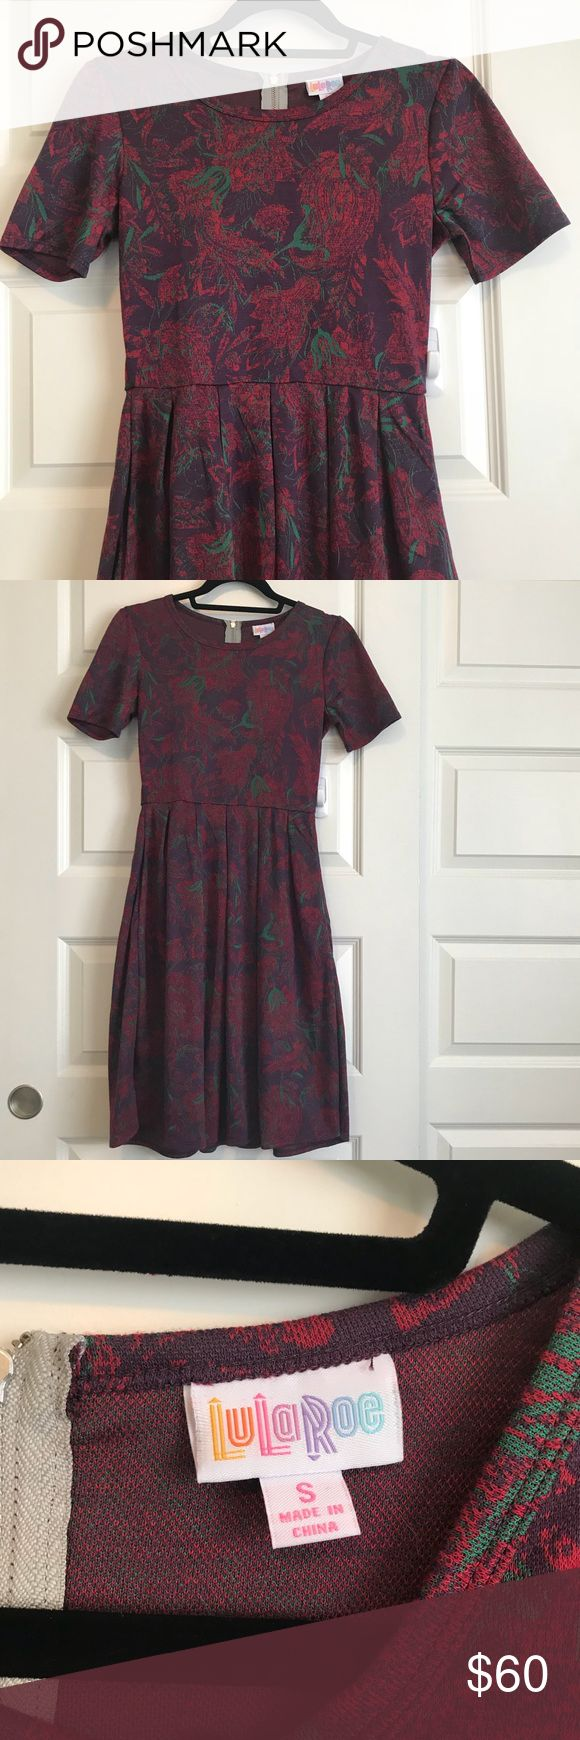 NWOT Floral JACQUARD Amelia Lularoe Purple Dress S This print is so pretty, in a lovely heavier weight stretchy jacquard, perfect for fall! Purple background with red and green floral design. Never worn, has been washed once cold/gentle and hung to dry- I purchased then realized it was very similar to another Amelia I had already 😭 Kinda went overboard!! Gorgeous exposed zipper, longer length, and functional pockets!!! Love, love, love my Amelia dresses! Happy to answer questions- check out…